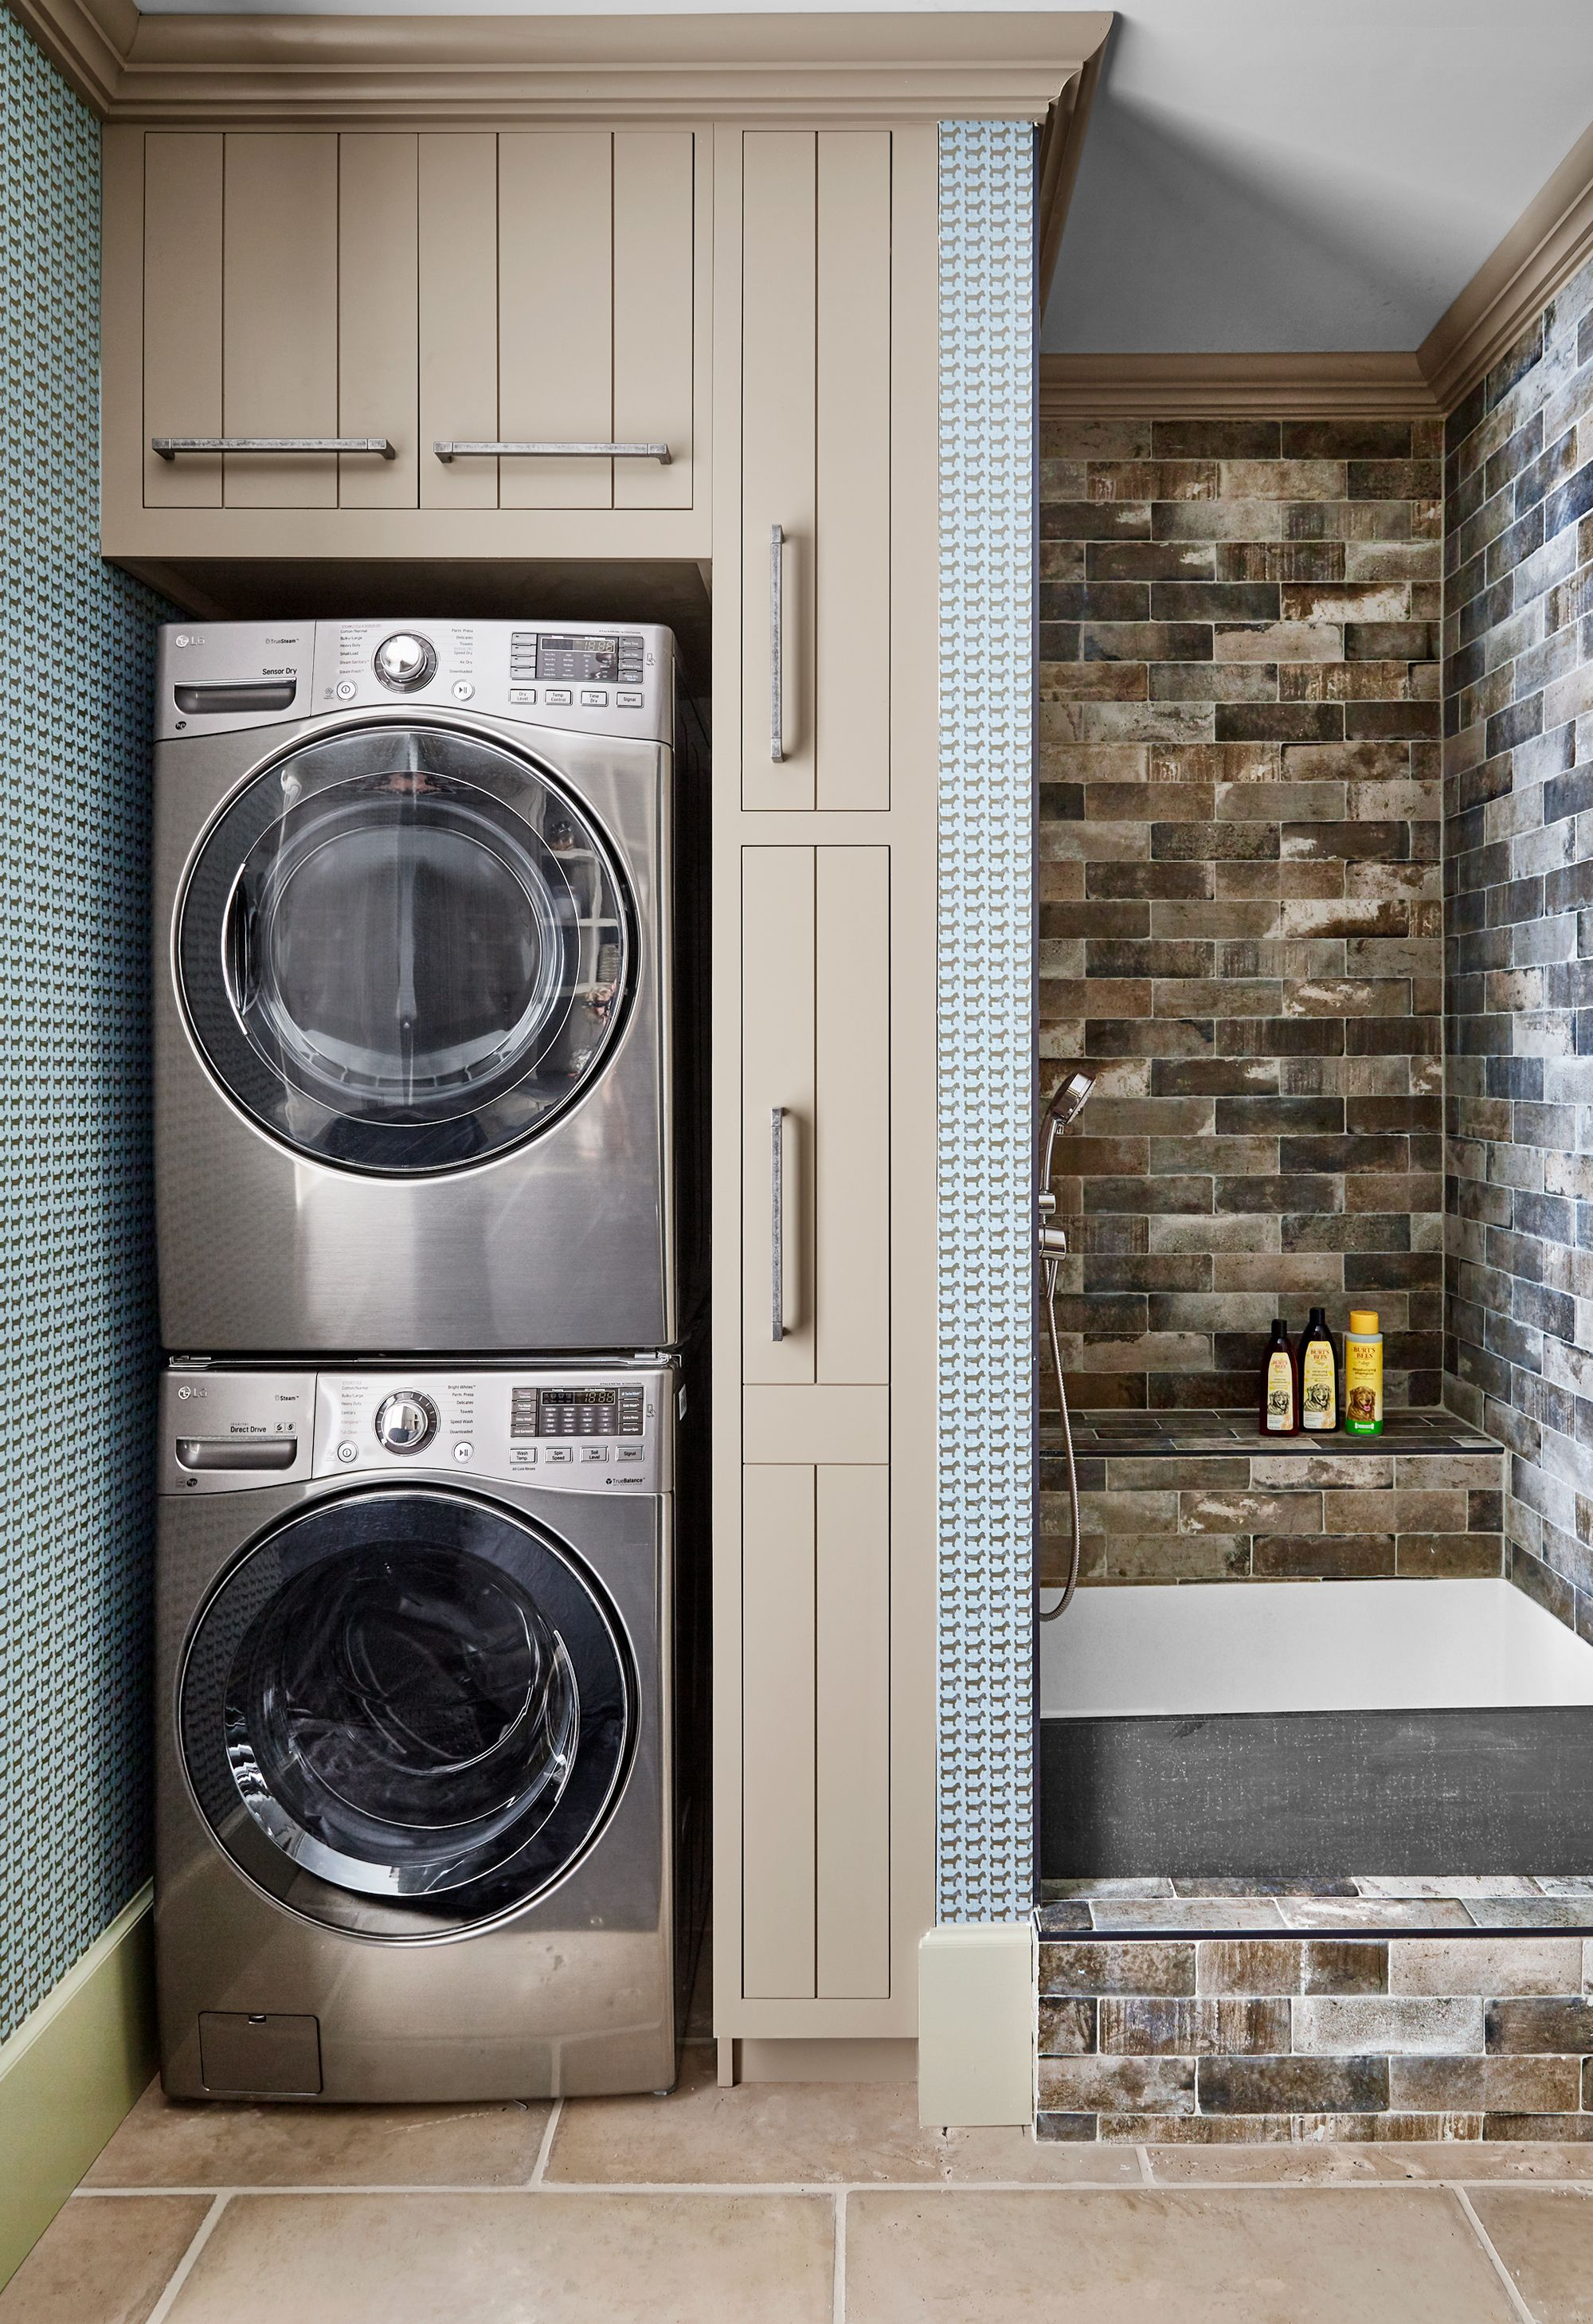 Compact laundry room with washer and dryer